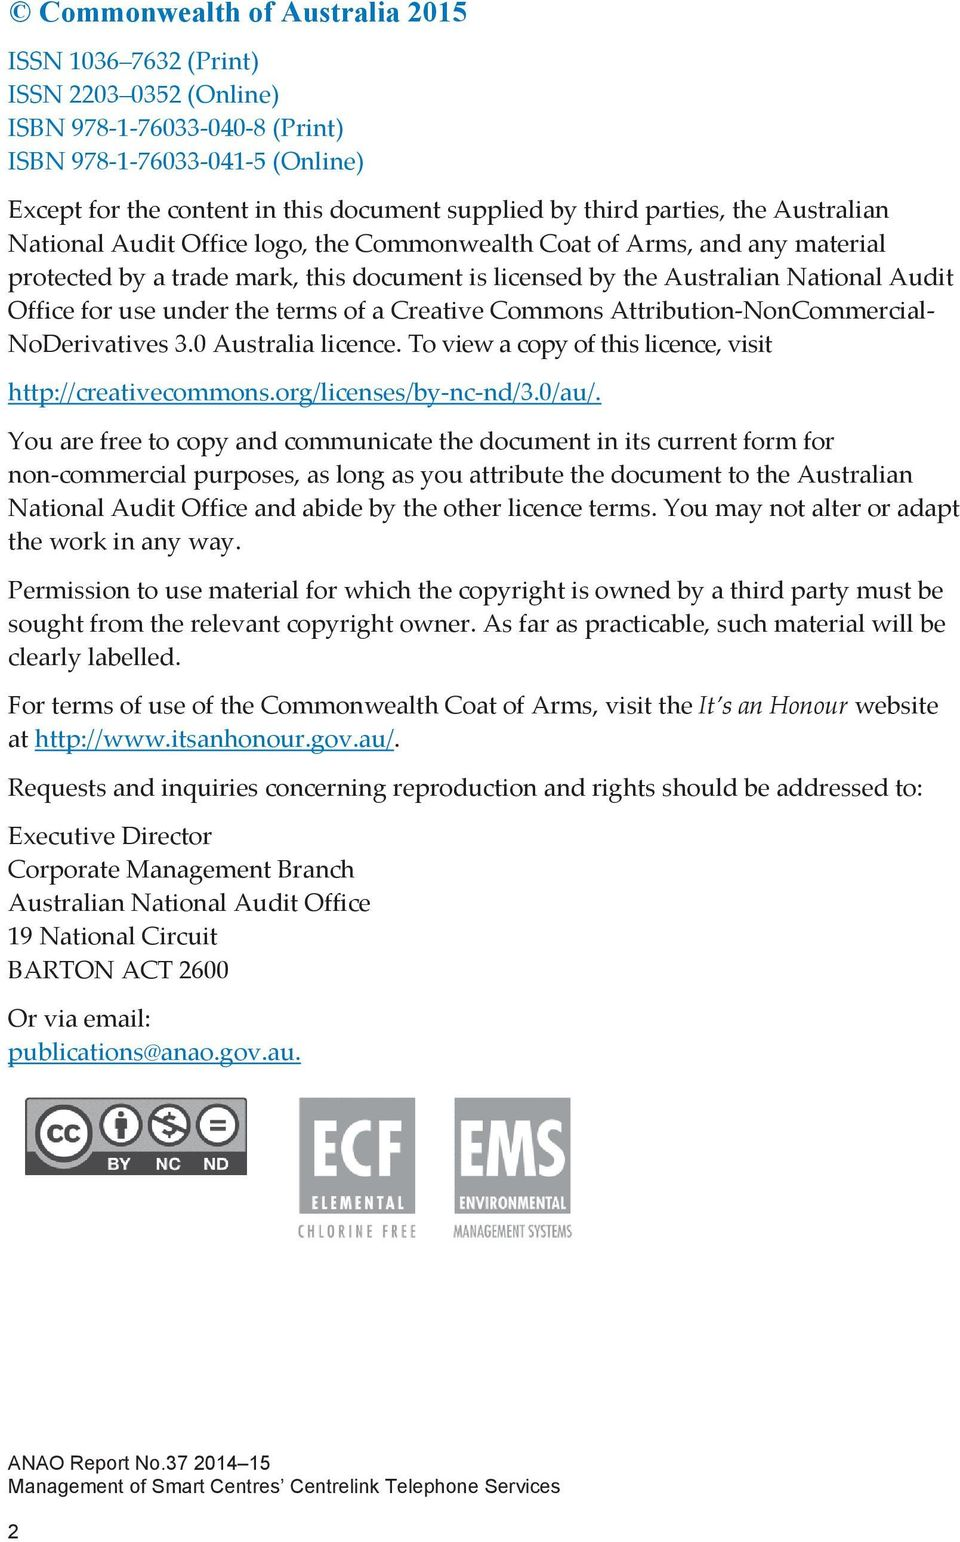 use under the terms of a Creative Commons Attribution NonCommercial NoDerivatives 3.0 Australia licence. To view a copy of this licence, visit http://creativecommons.org/licenses/by nc nd/3.0/au/.